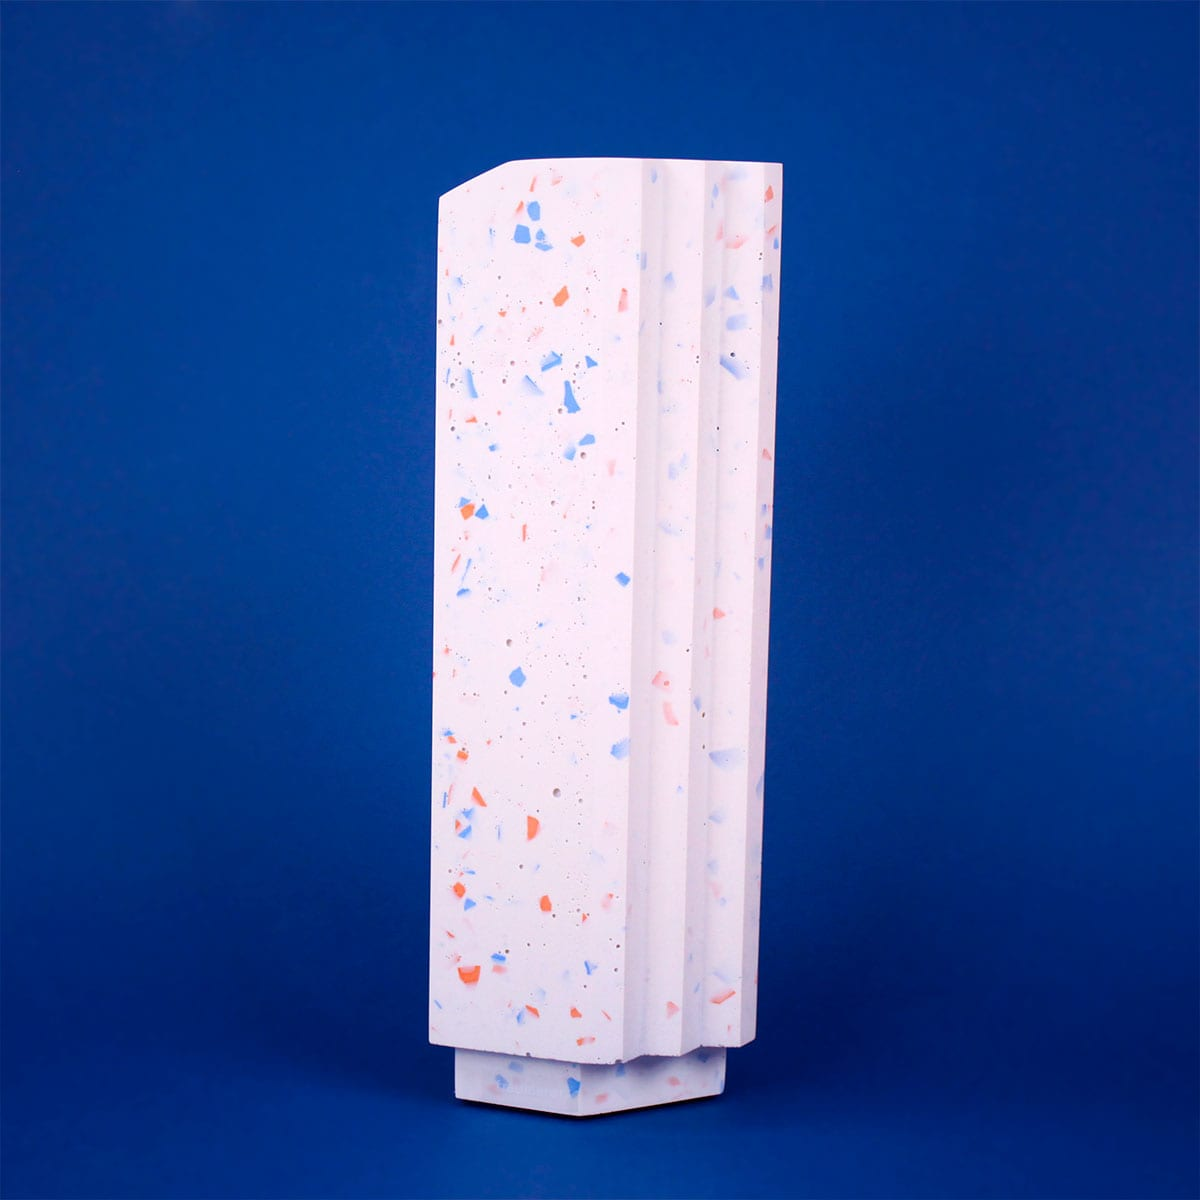 TALL FRECKLED VASE WHITE FRAUKLARER